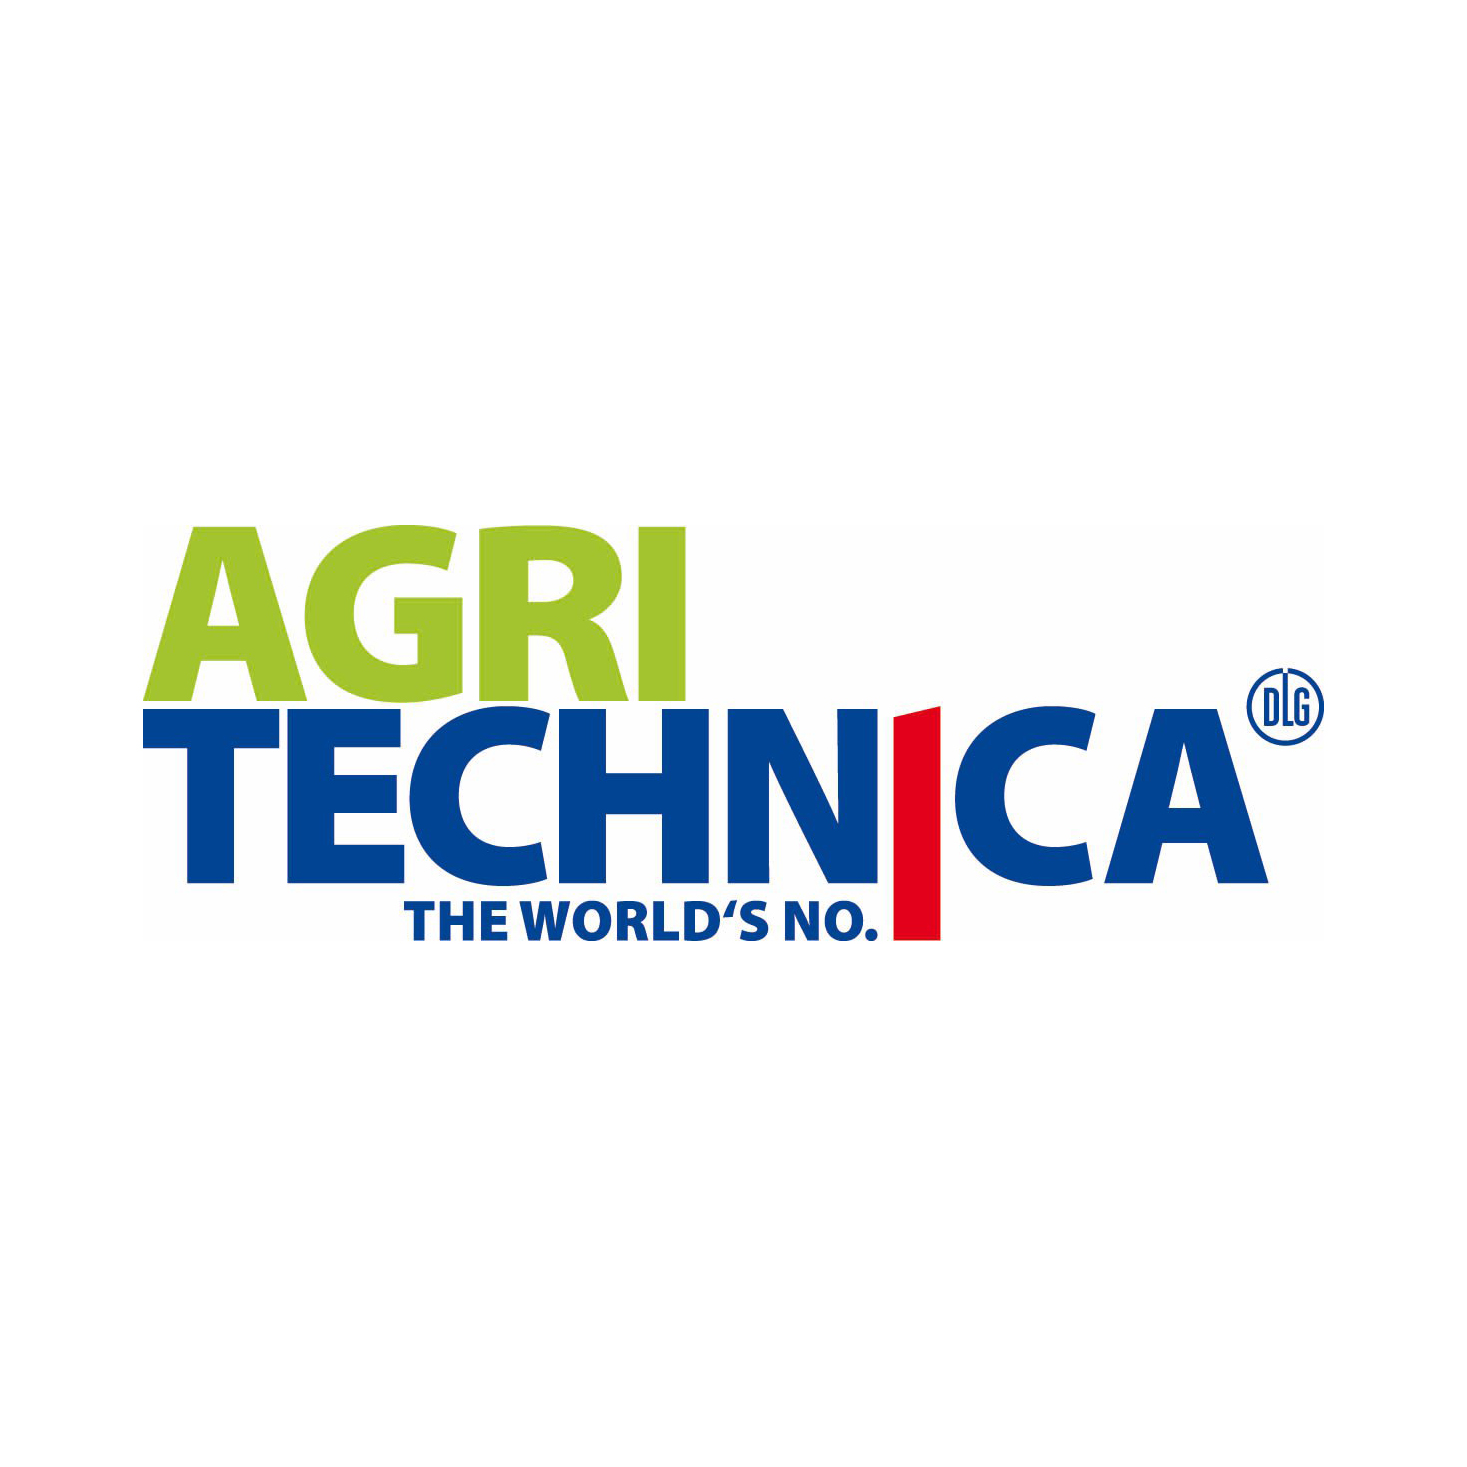 See us at Agritechnica, Hanover - Hall 17 Stand A32 - 12-18 Nov